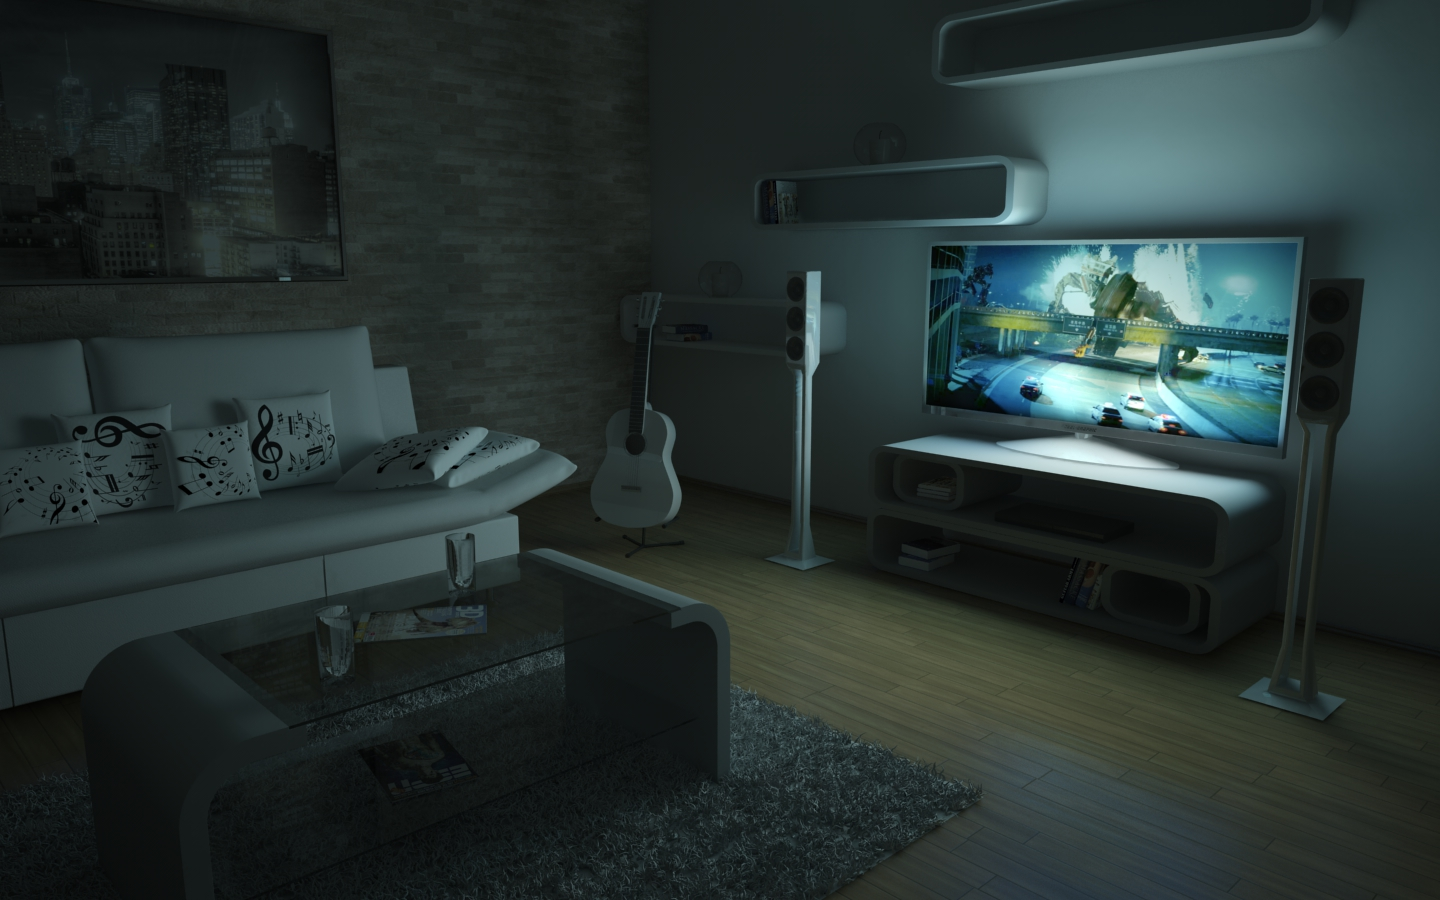 Small Room Ideas Living Room 11 At Night By Slographic On Deviantart